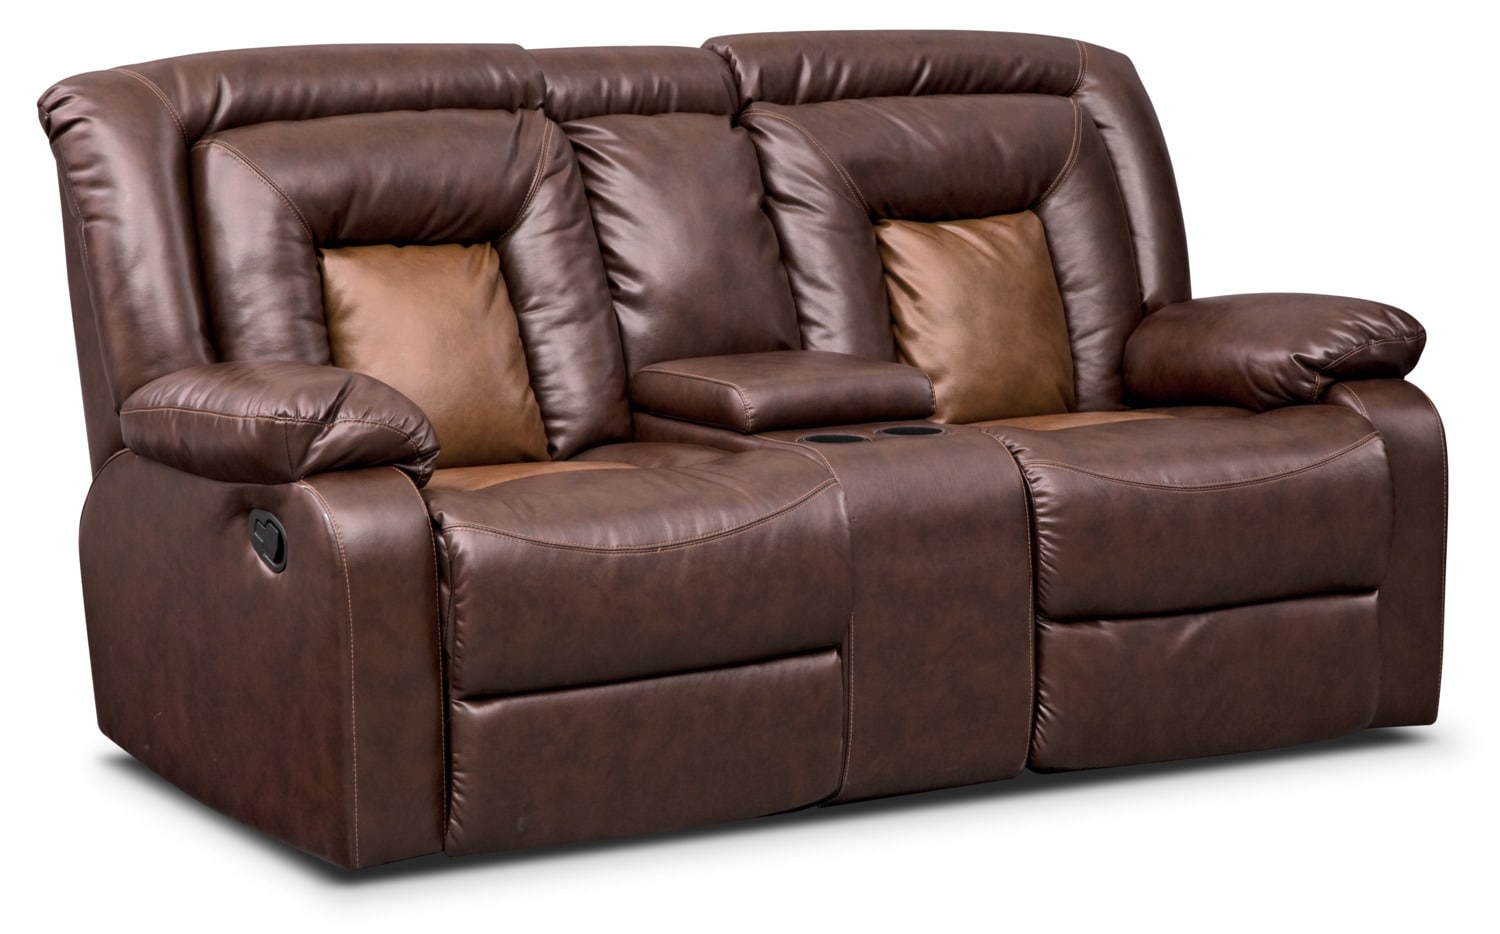 Mustang dual reclining sofa dual reclining loveseat and recliner set brown american Loveseats that recline